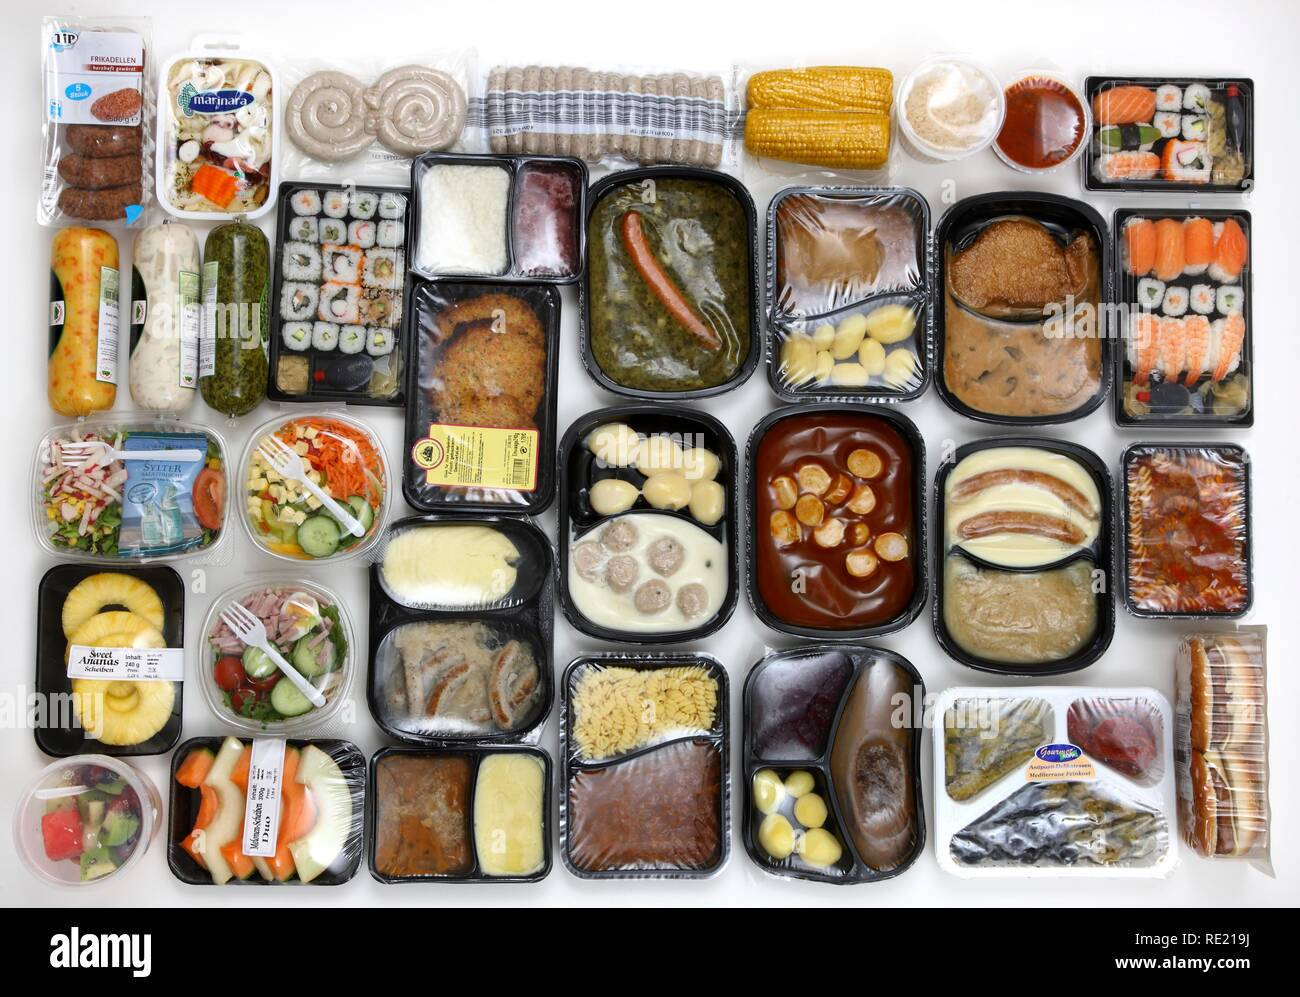 Several prepared meals, convenience food - Stock Image